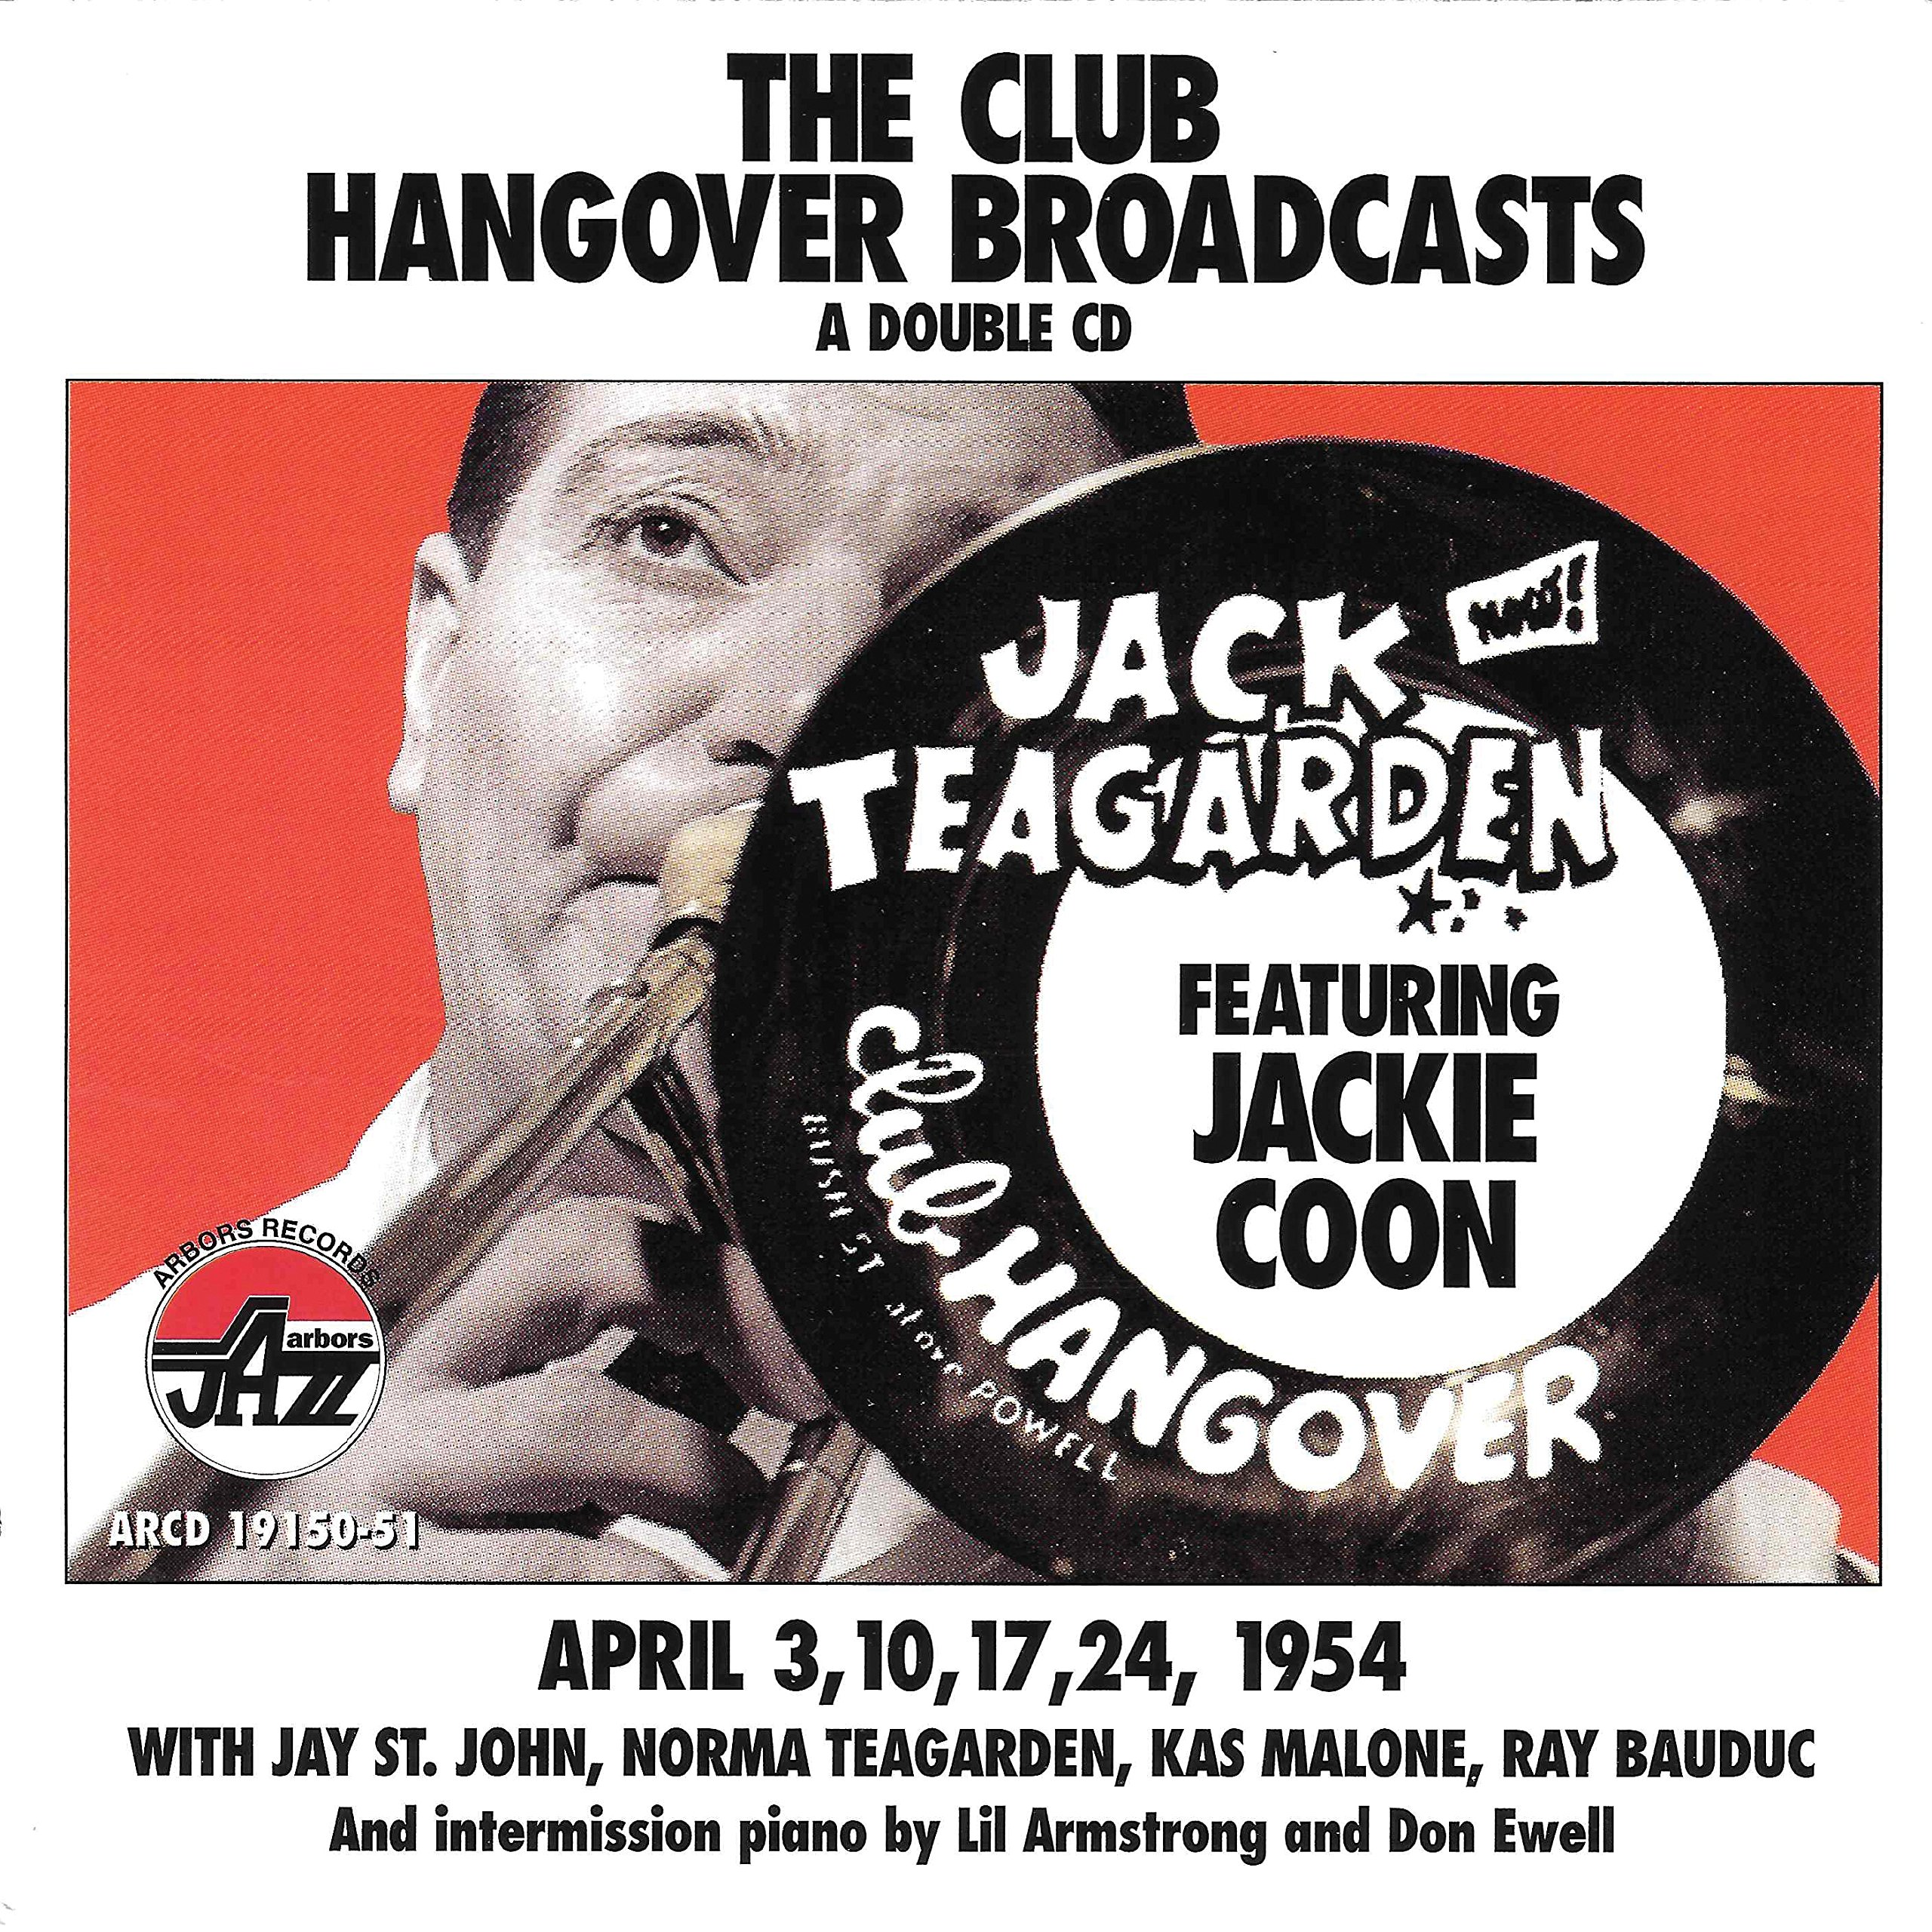 Club Hangover Broadcasts - April 3,10,17,24 1954 by Arbors